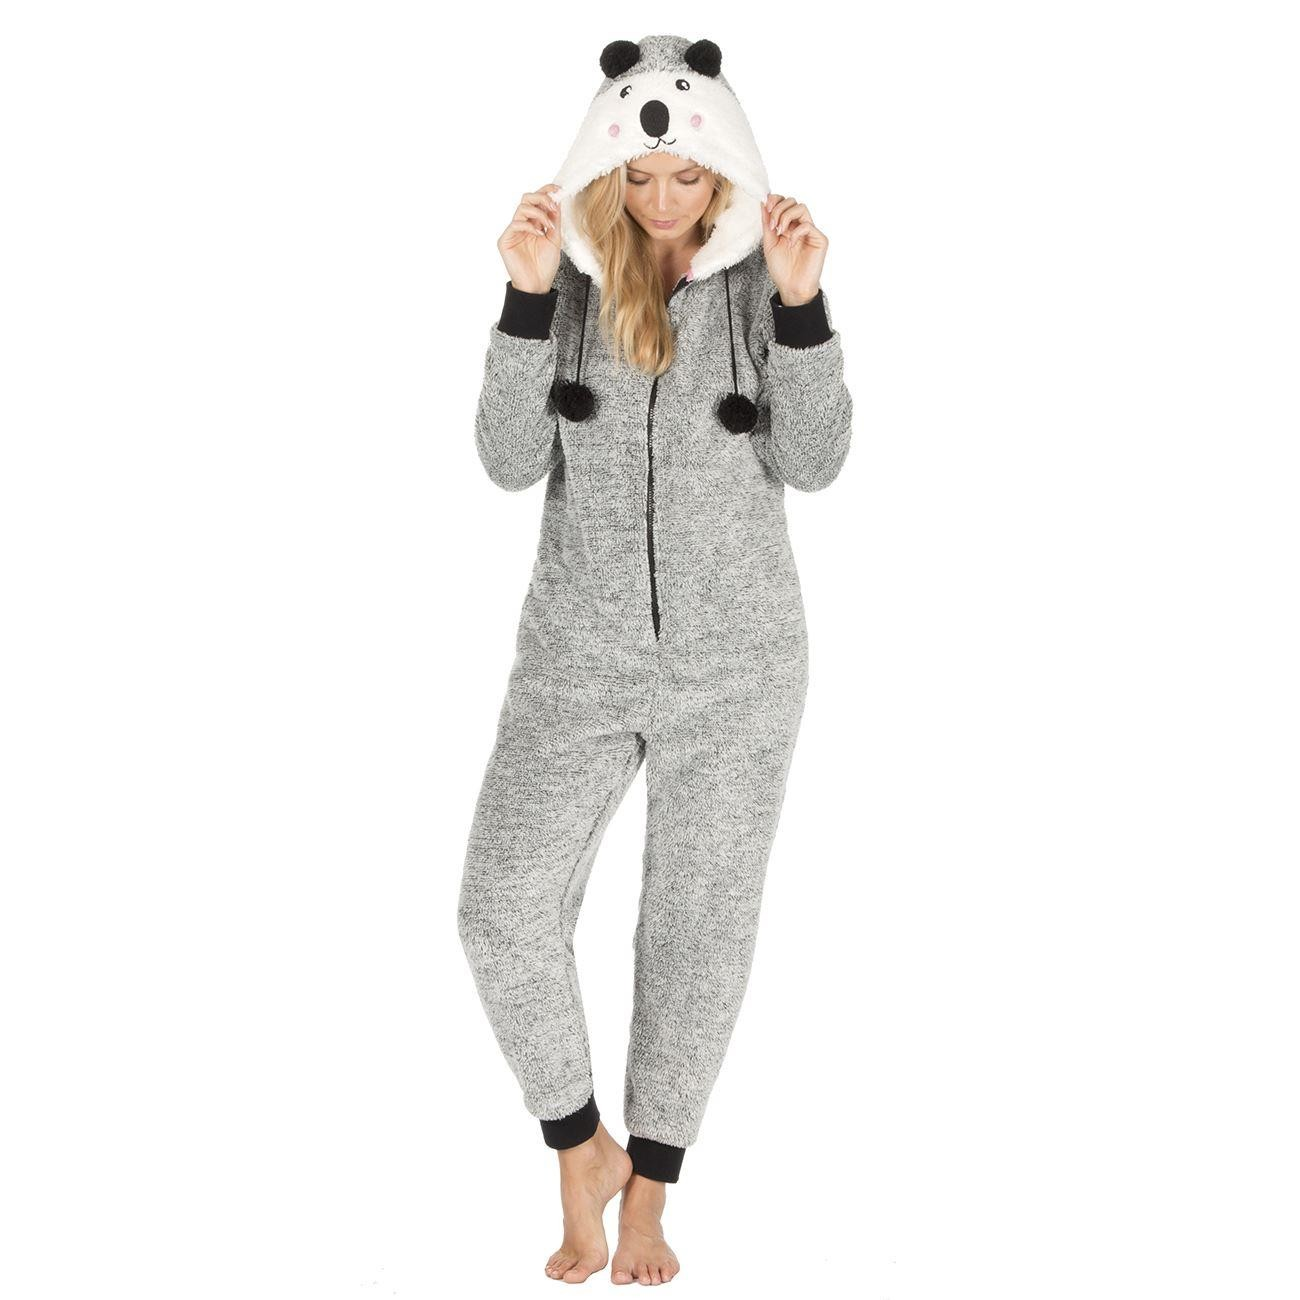 Onezee Novelty Two Tone Snuggle Onesie - Black